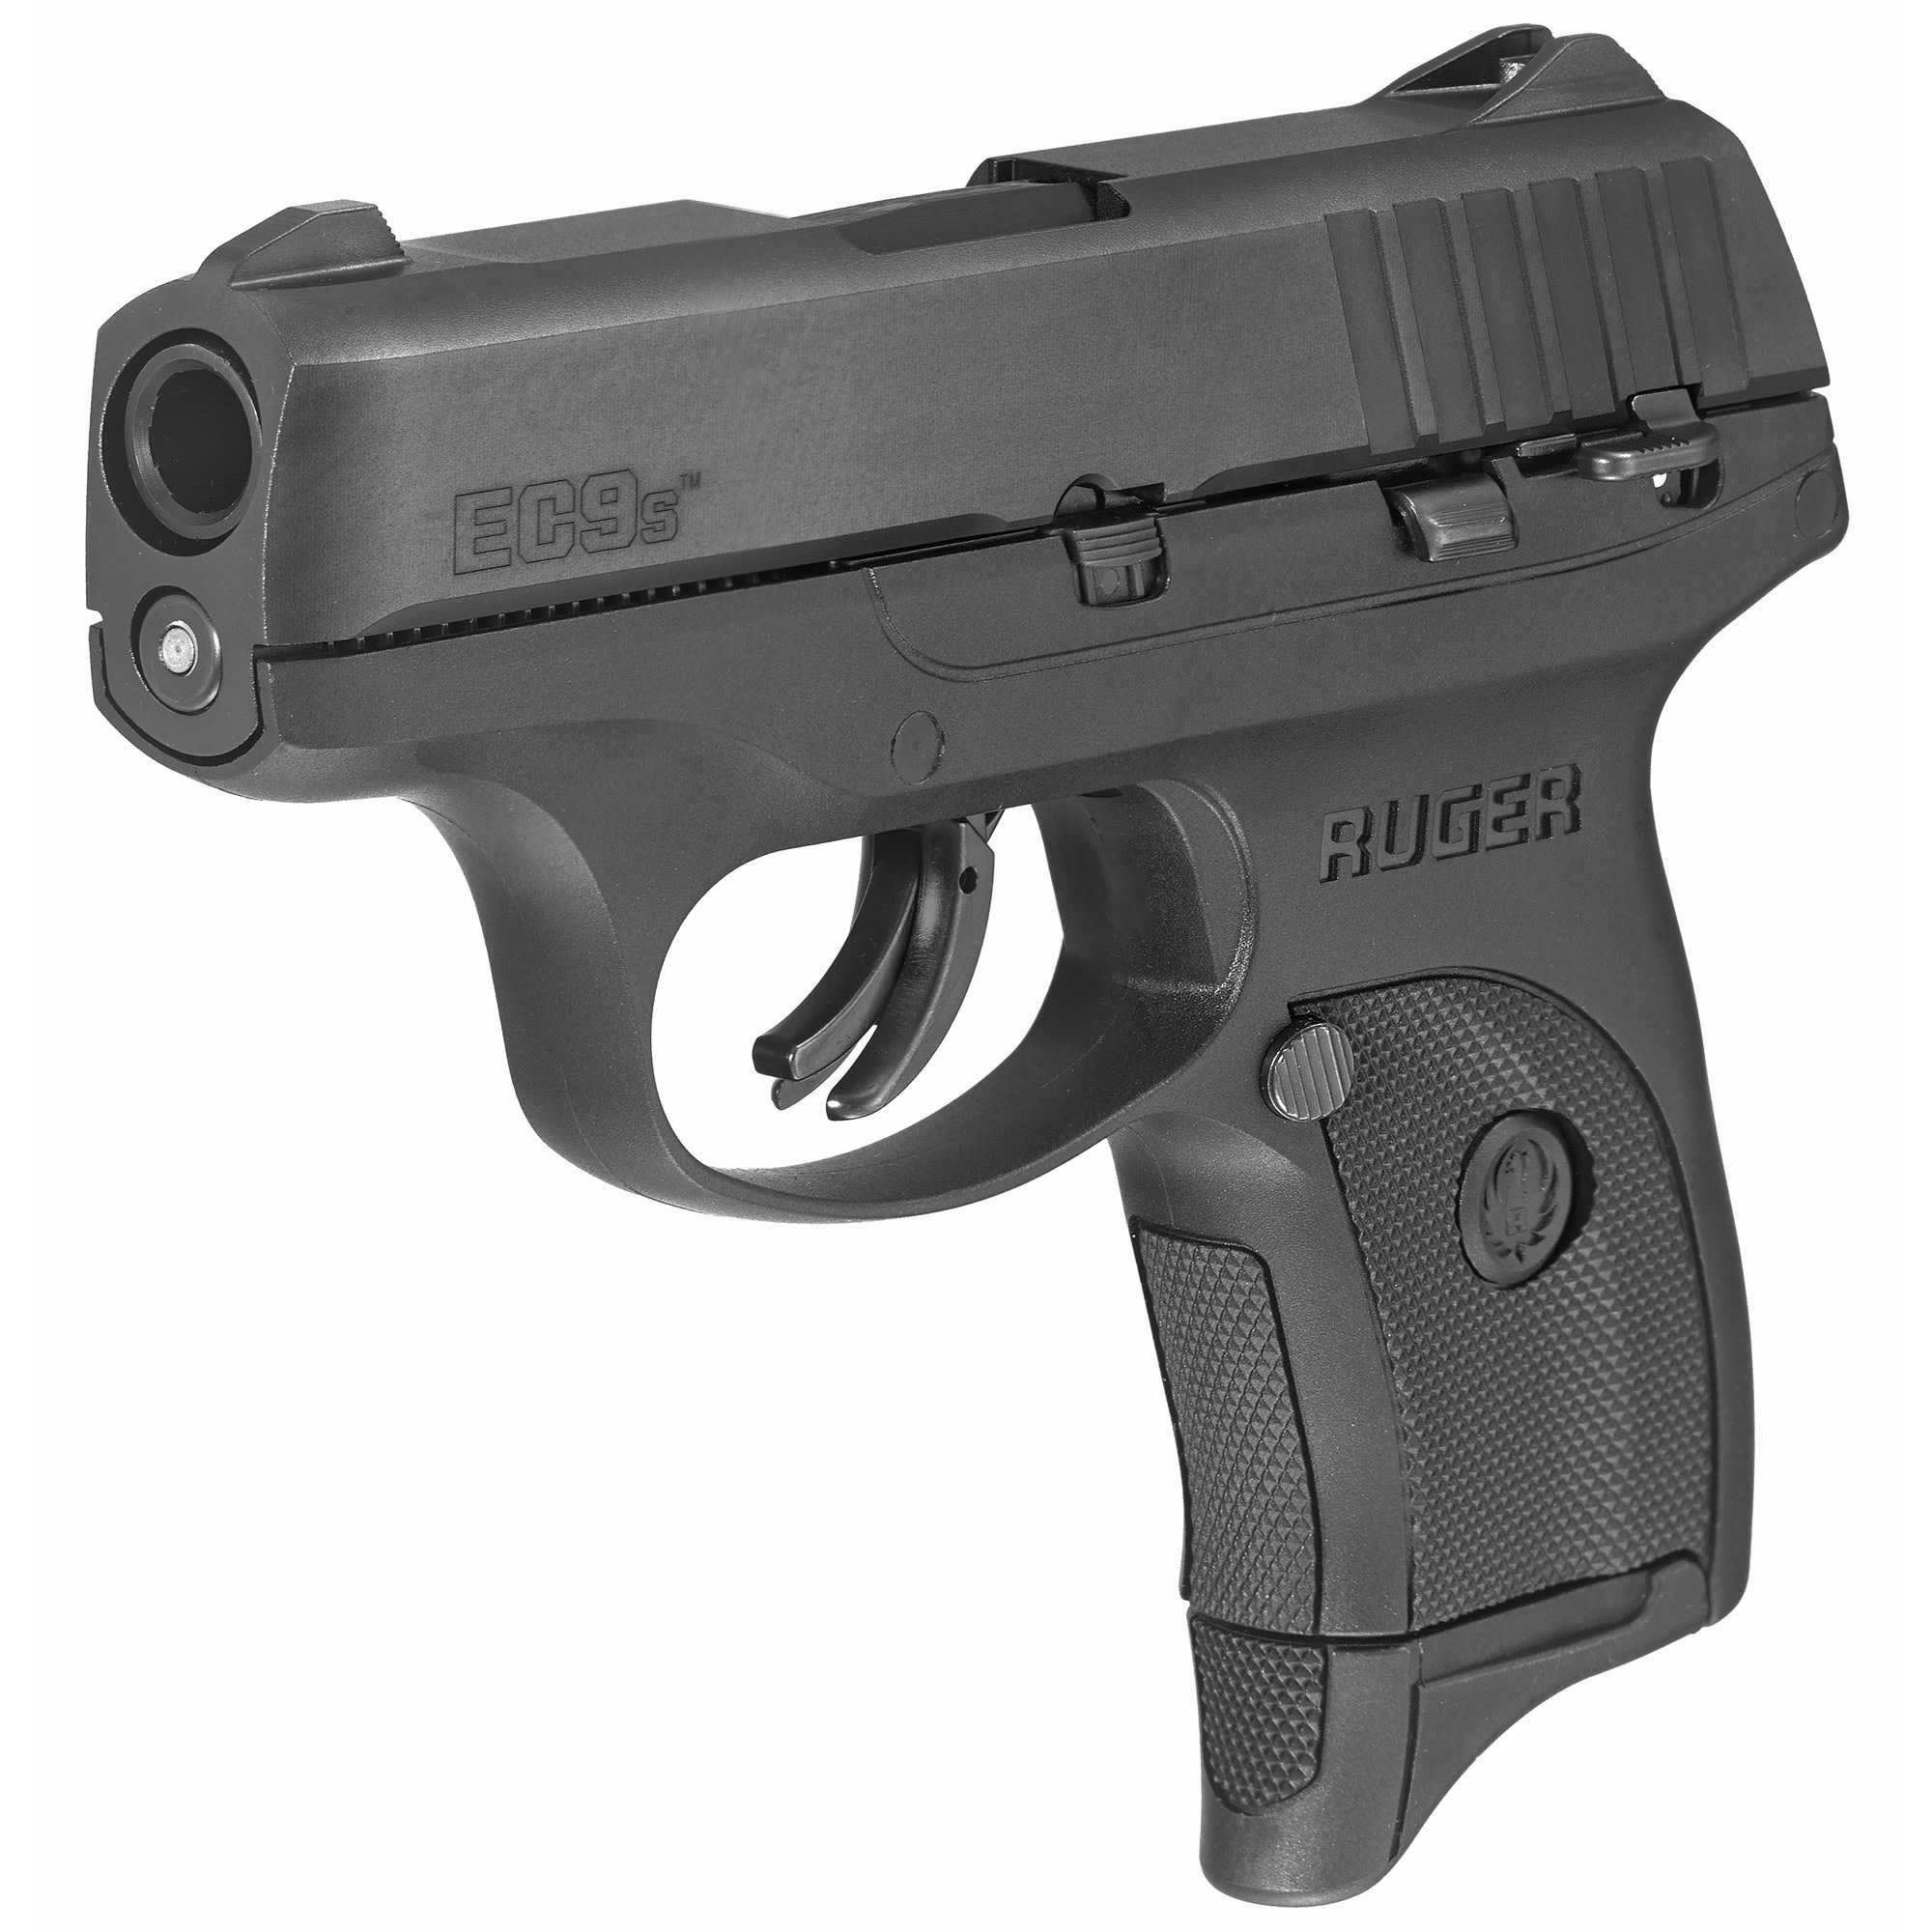 """Ruger EC9S, 9mm, 3.1"""", Black, 7rd, 1 magazine, thumb safety"""